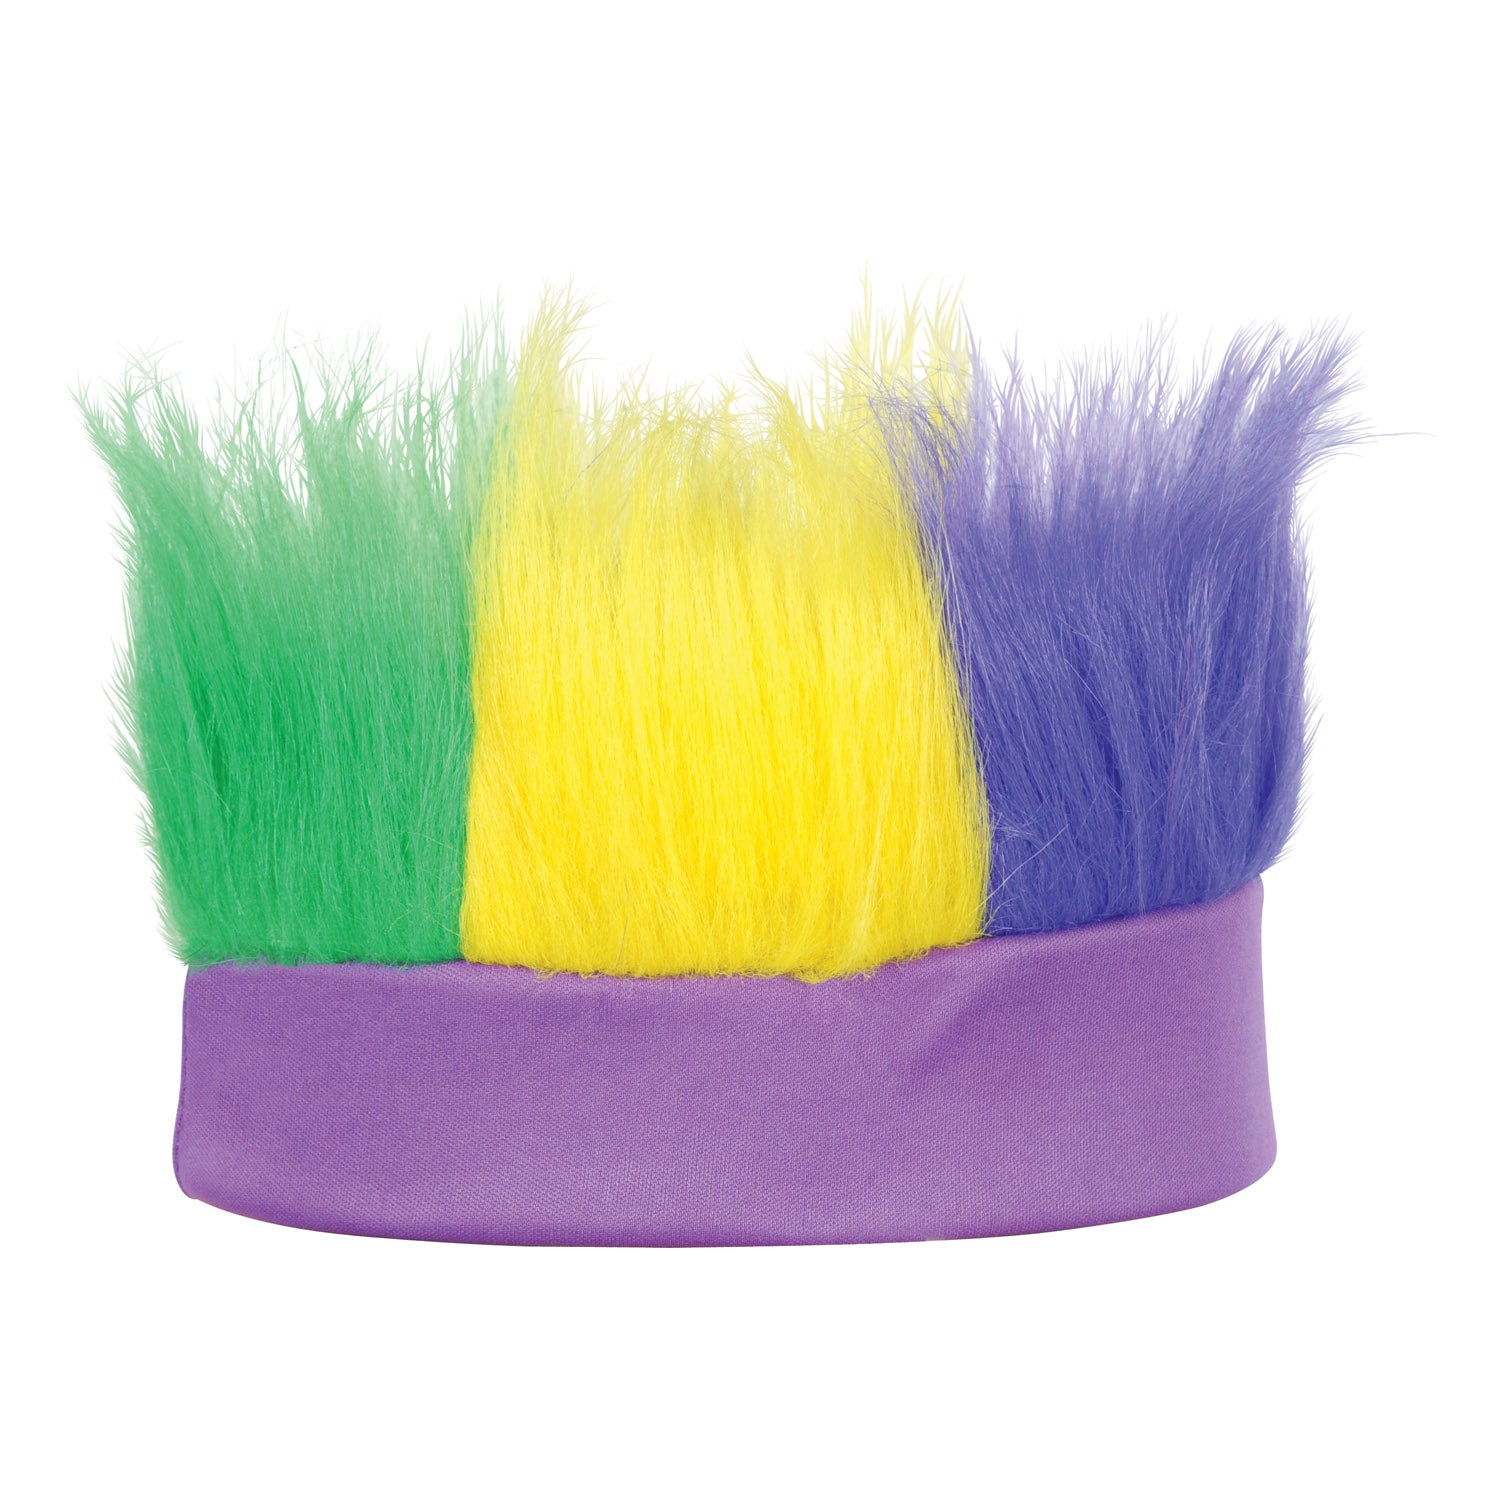 Hairy Headband, golden-yellow, green, purple by Beistle - Mardi Gras Theme Decorations